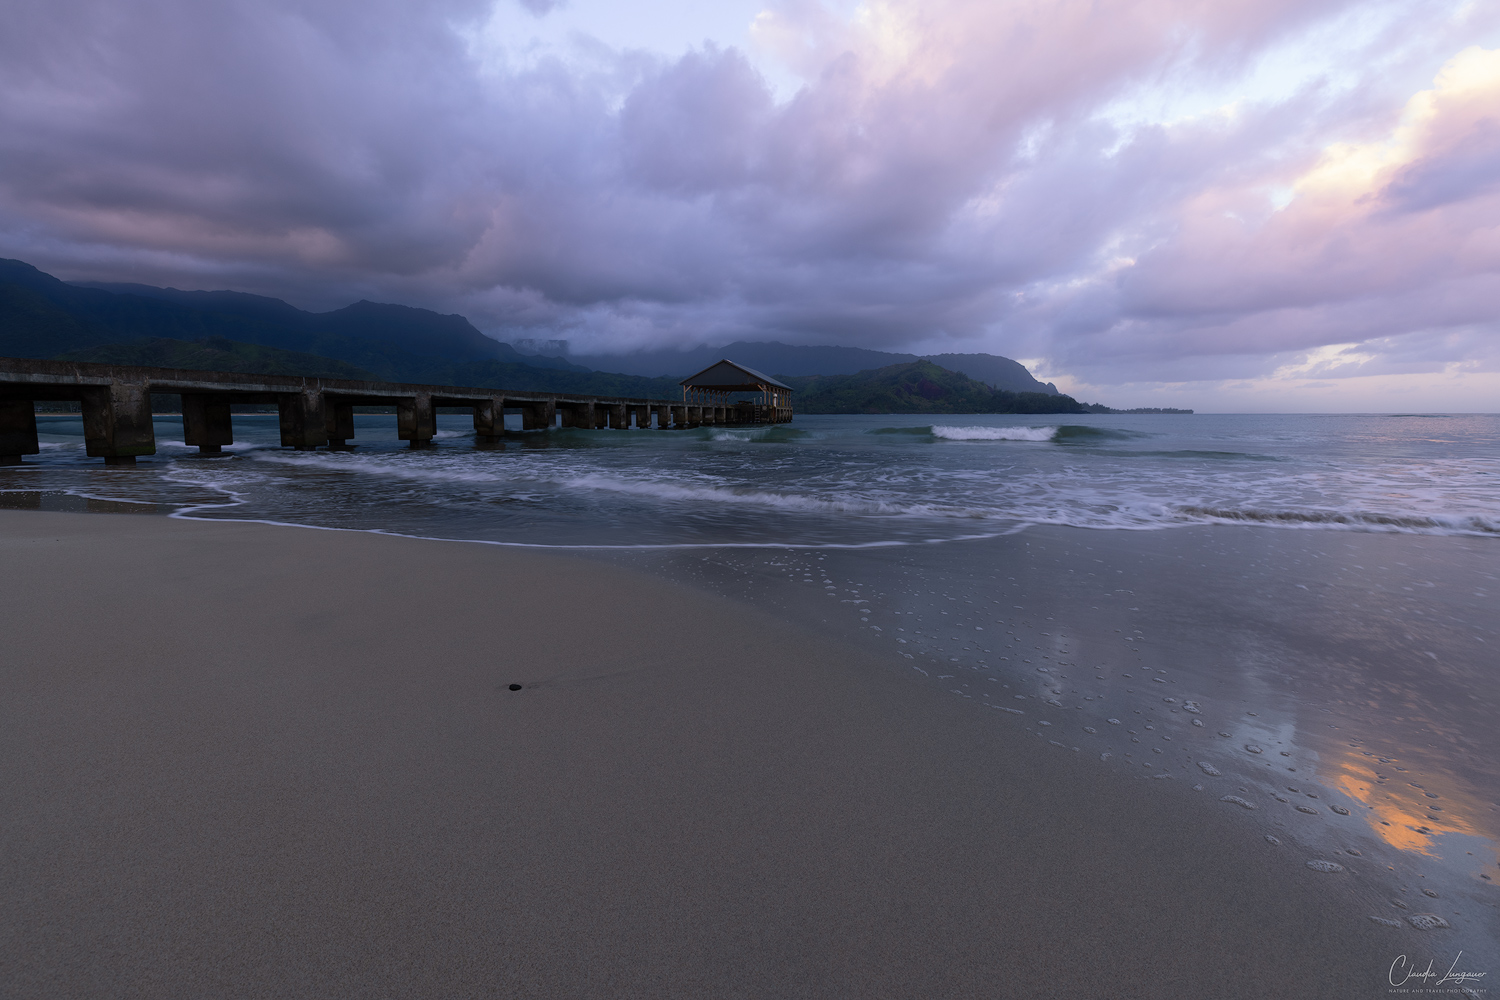 Dramatic clouds forming over Hanalei Pier and the rolling mountains on Kauai island in Hawaii.